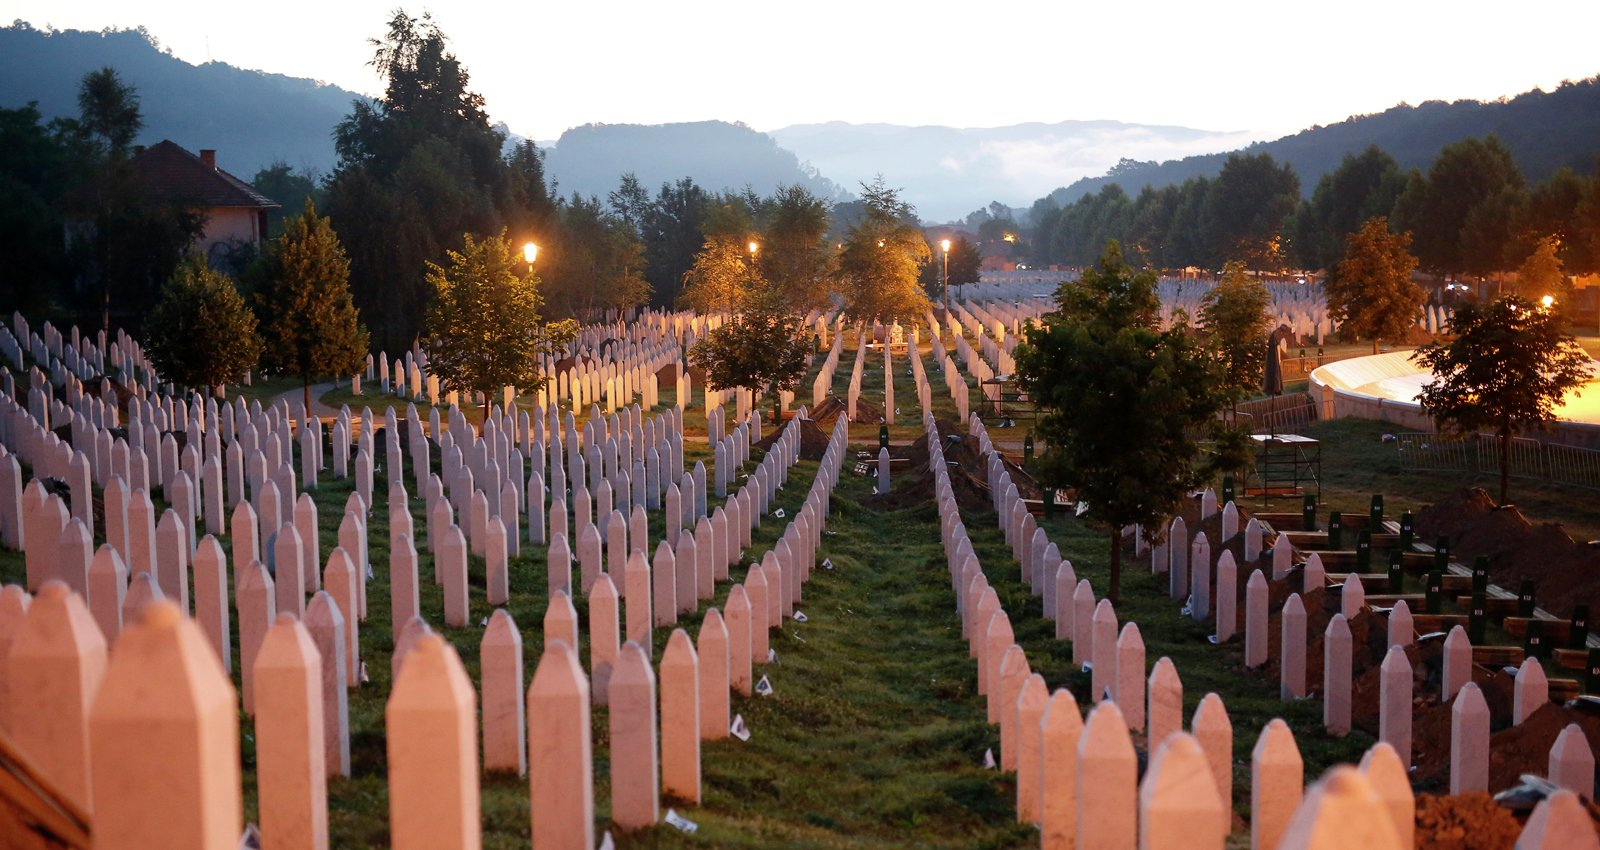 Best 50 Srebrenica Wallpaper on HipWallpaper Srebrenica 1600x850